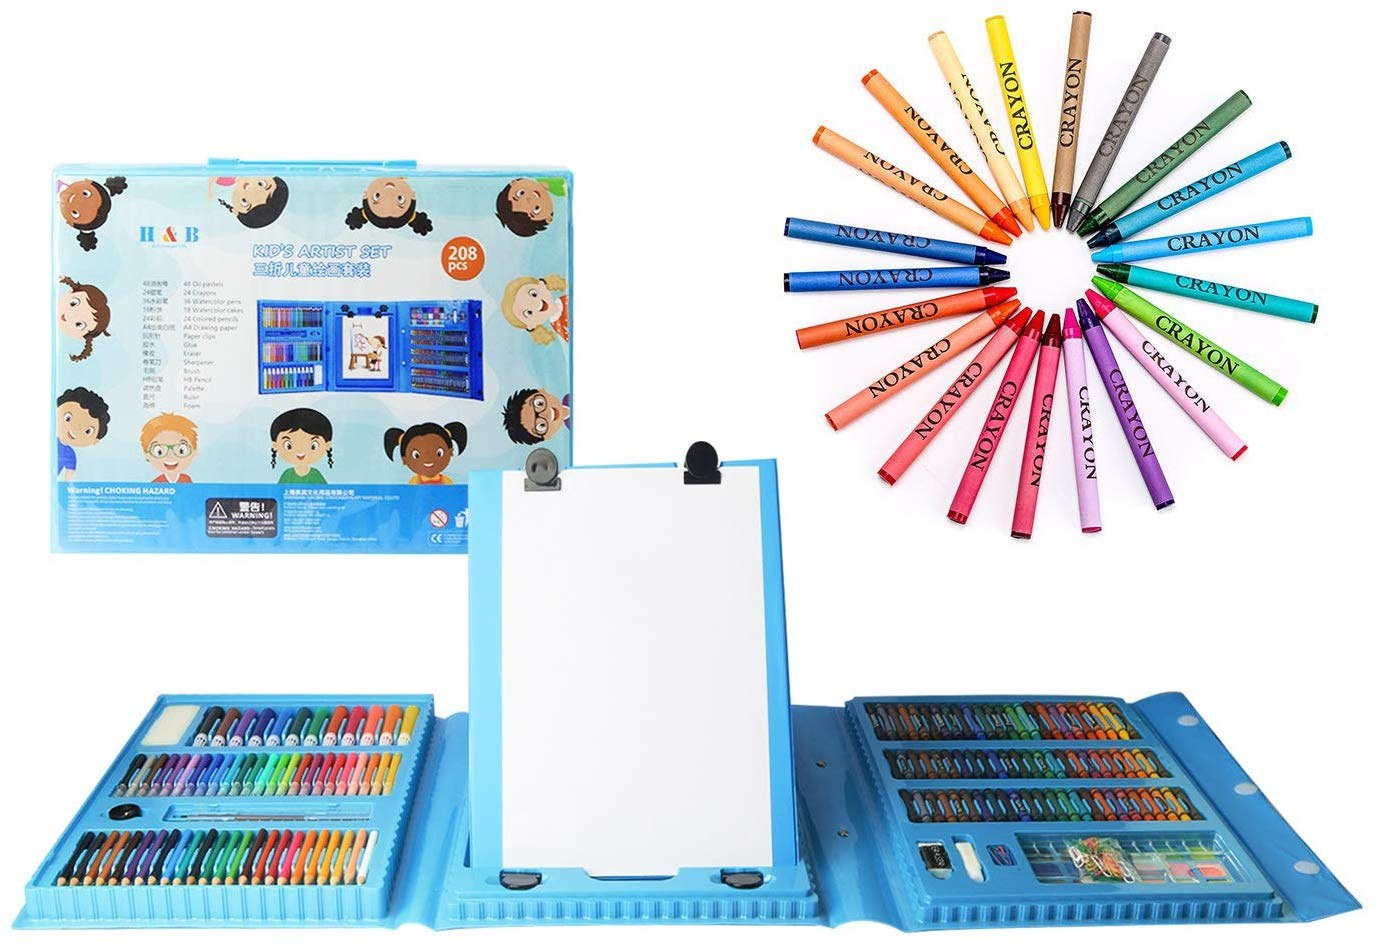 H & B Kids Art Supplies 208-Piece Painting & Drawing Case only $10.31! (55% off)